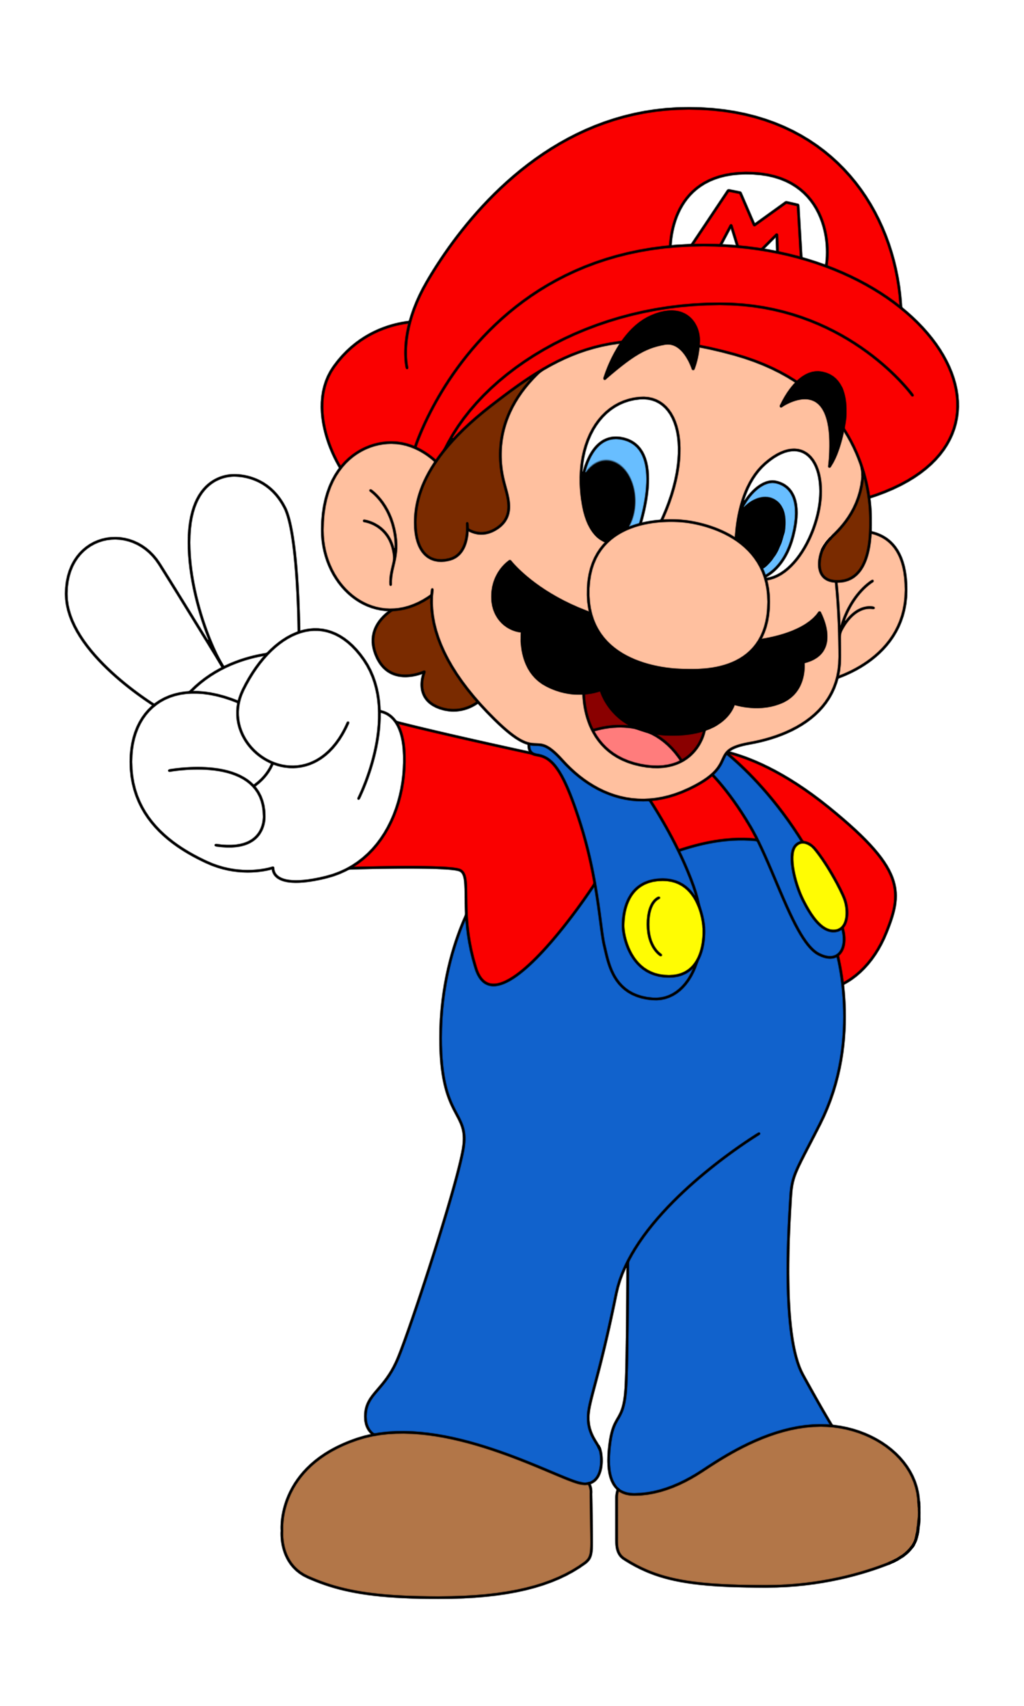 Super mario character clipart graphic library library Nintendo Character Clipart - Clipart Kid graphic library library